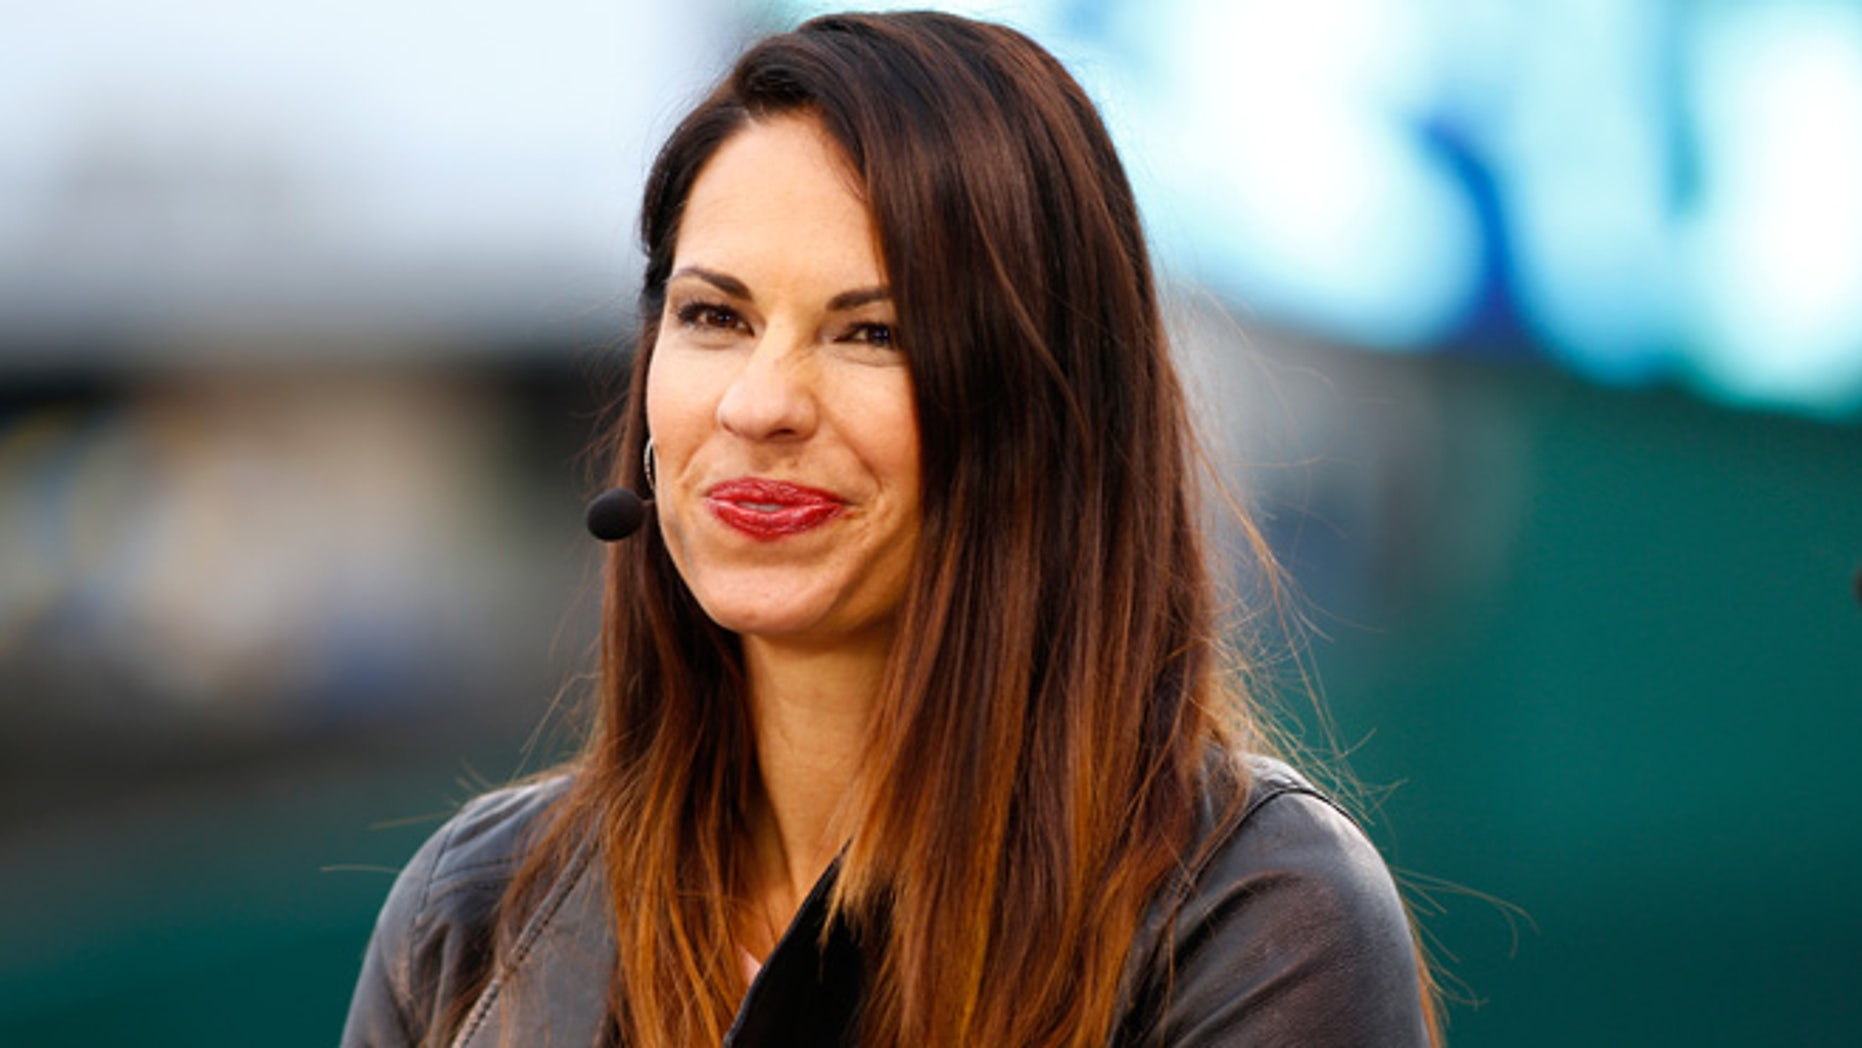 Mets 'Excited' To Hire Jessica Mendoza As Operations Adviser